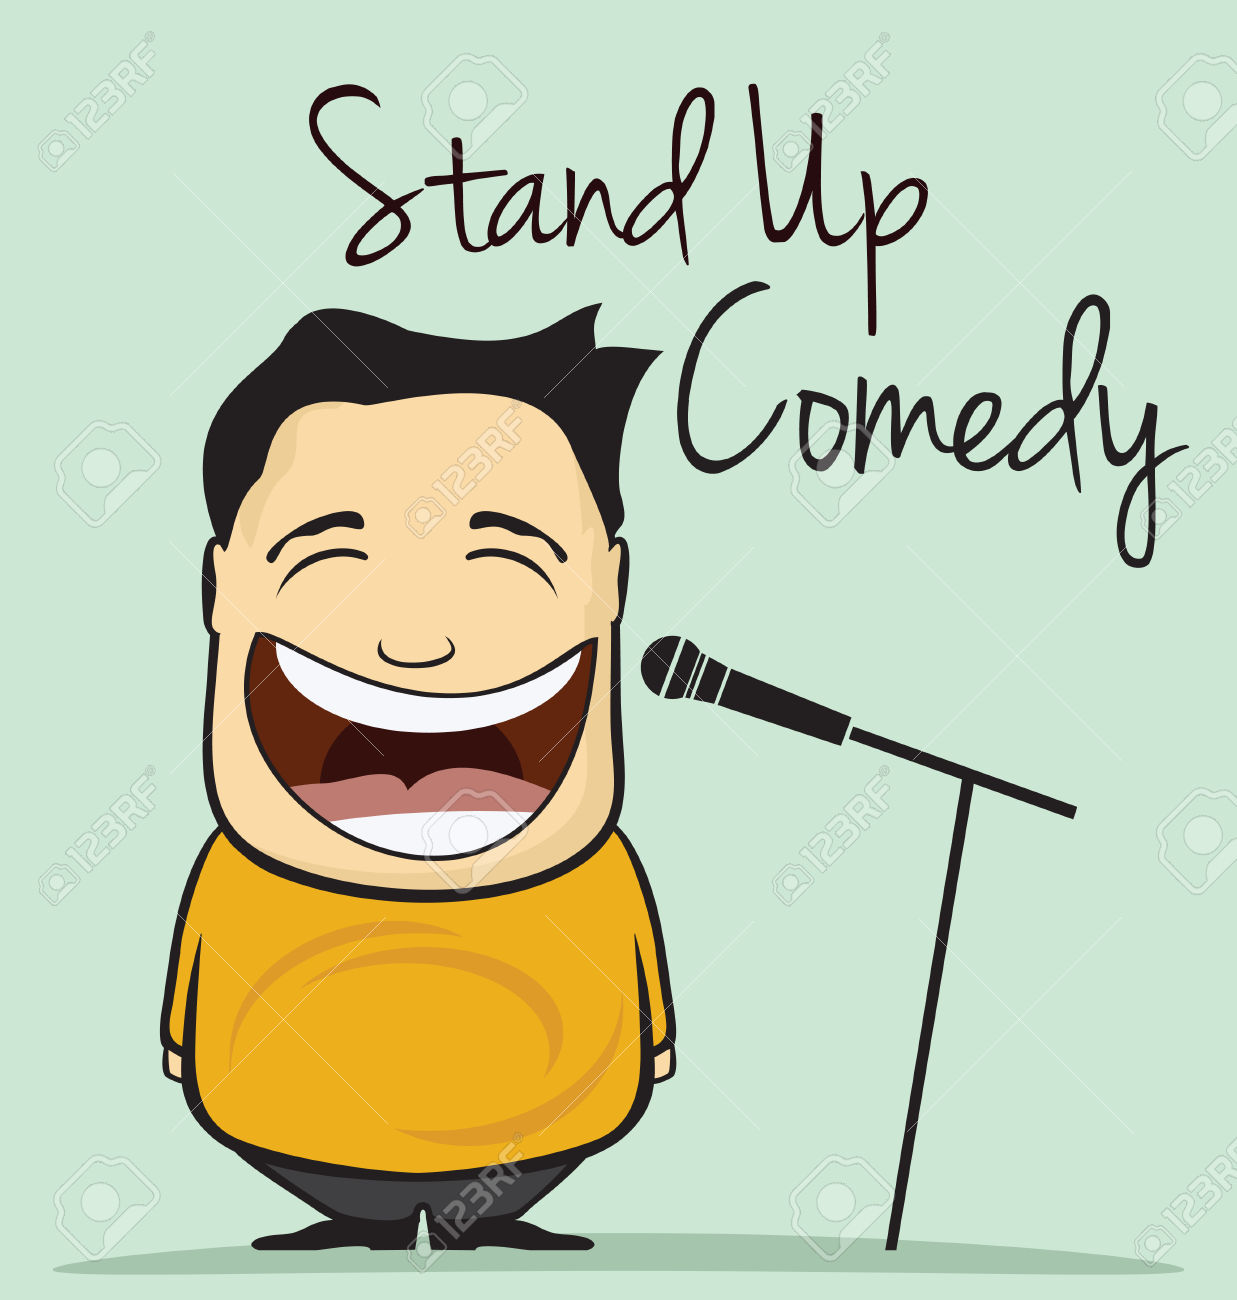 Stand up comedy clipart.